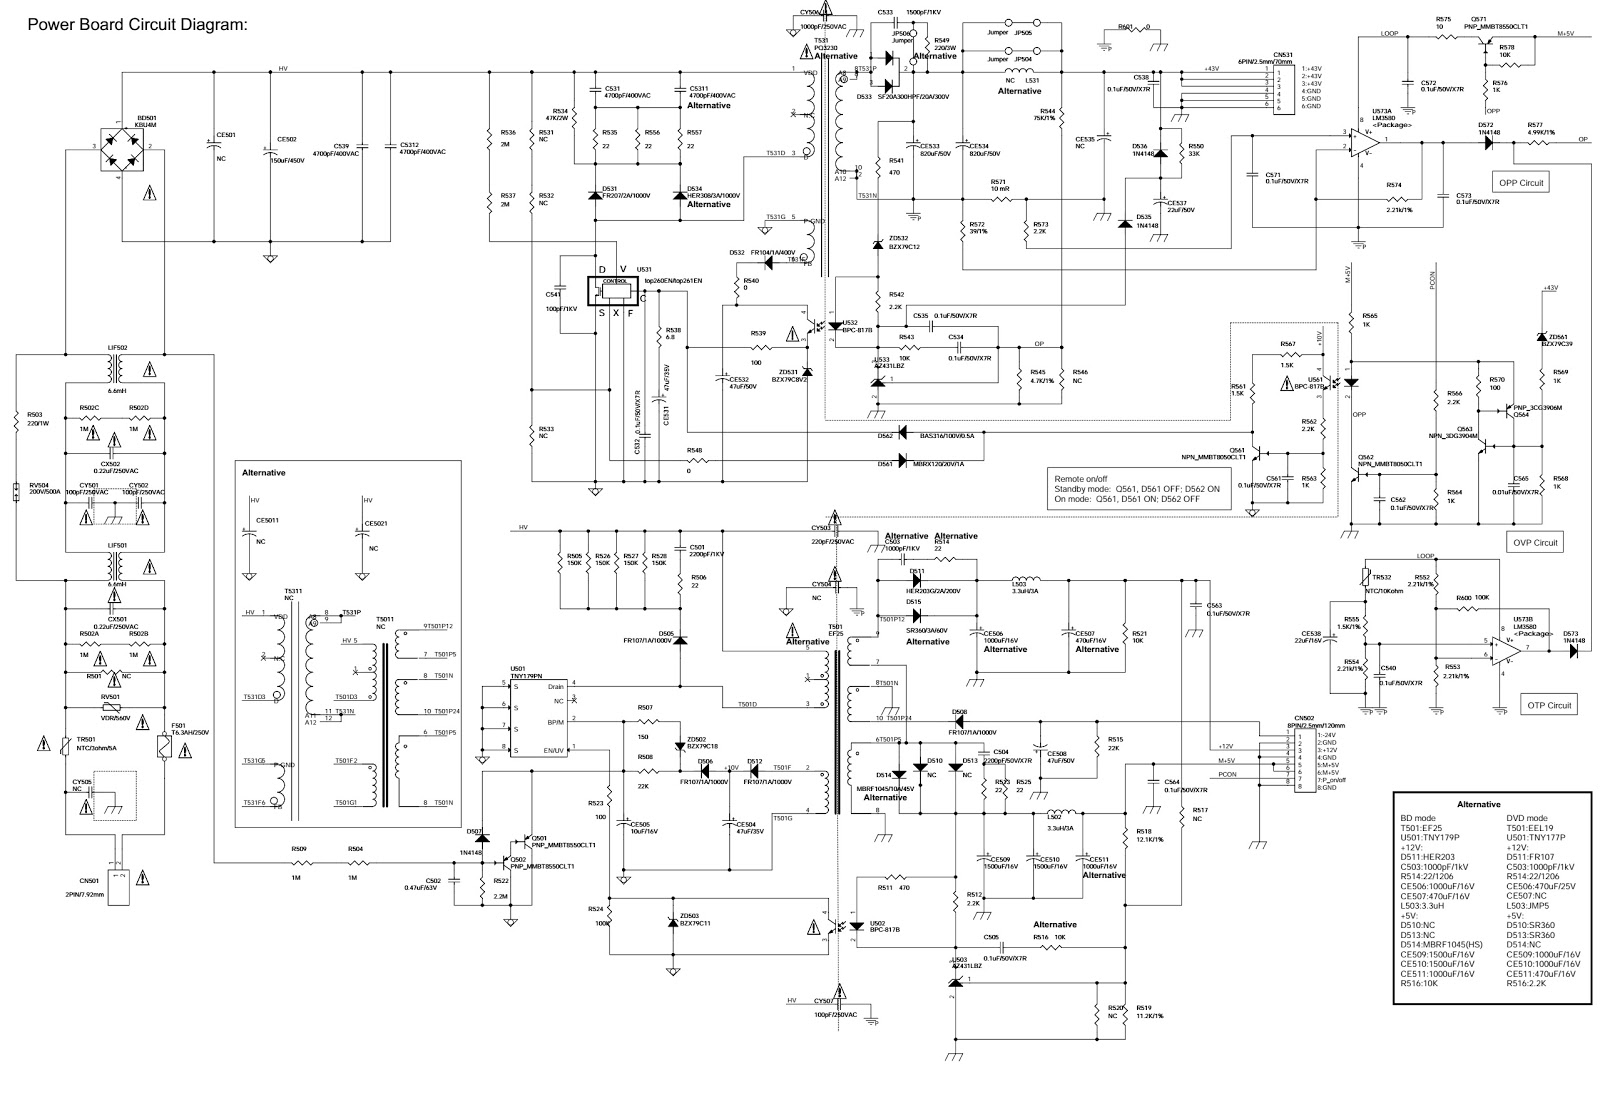 Philips Hts3538 Smps And Power Amplifier Circuit Diagram Software To Magnify Schematic Tv Led Click On The Schematics Zoom In